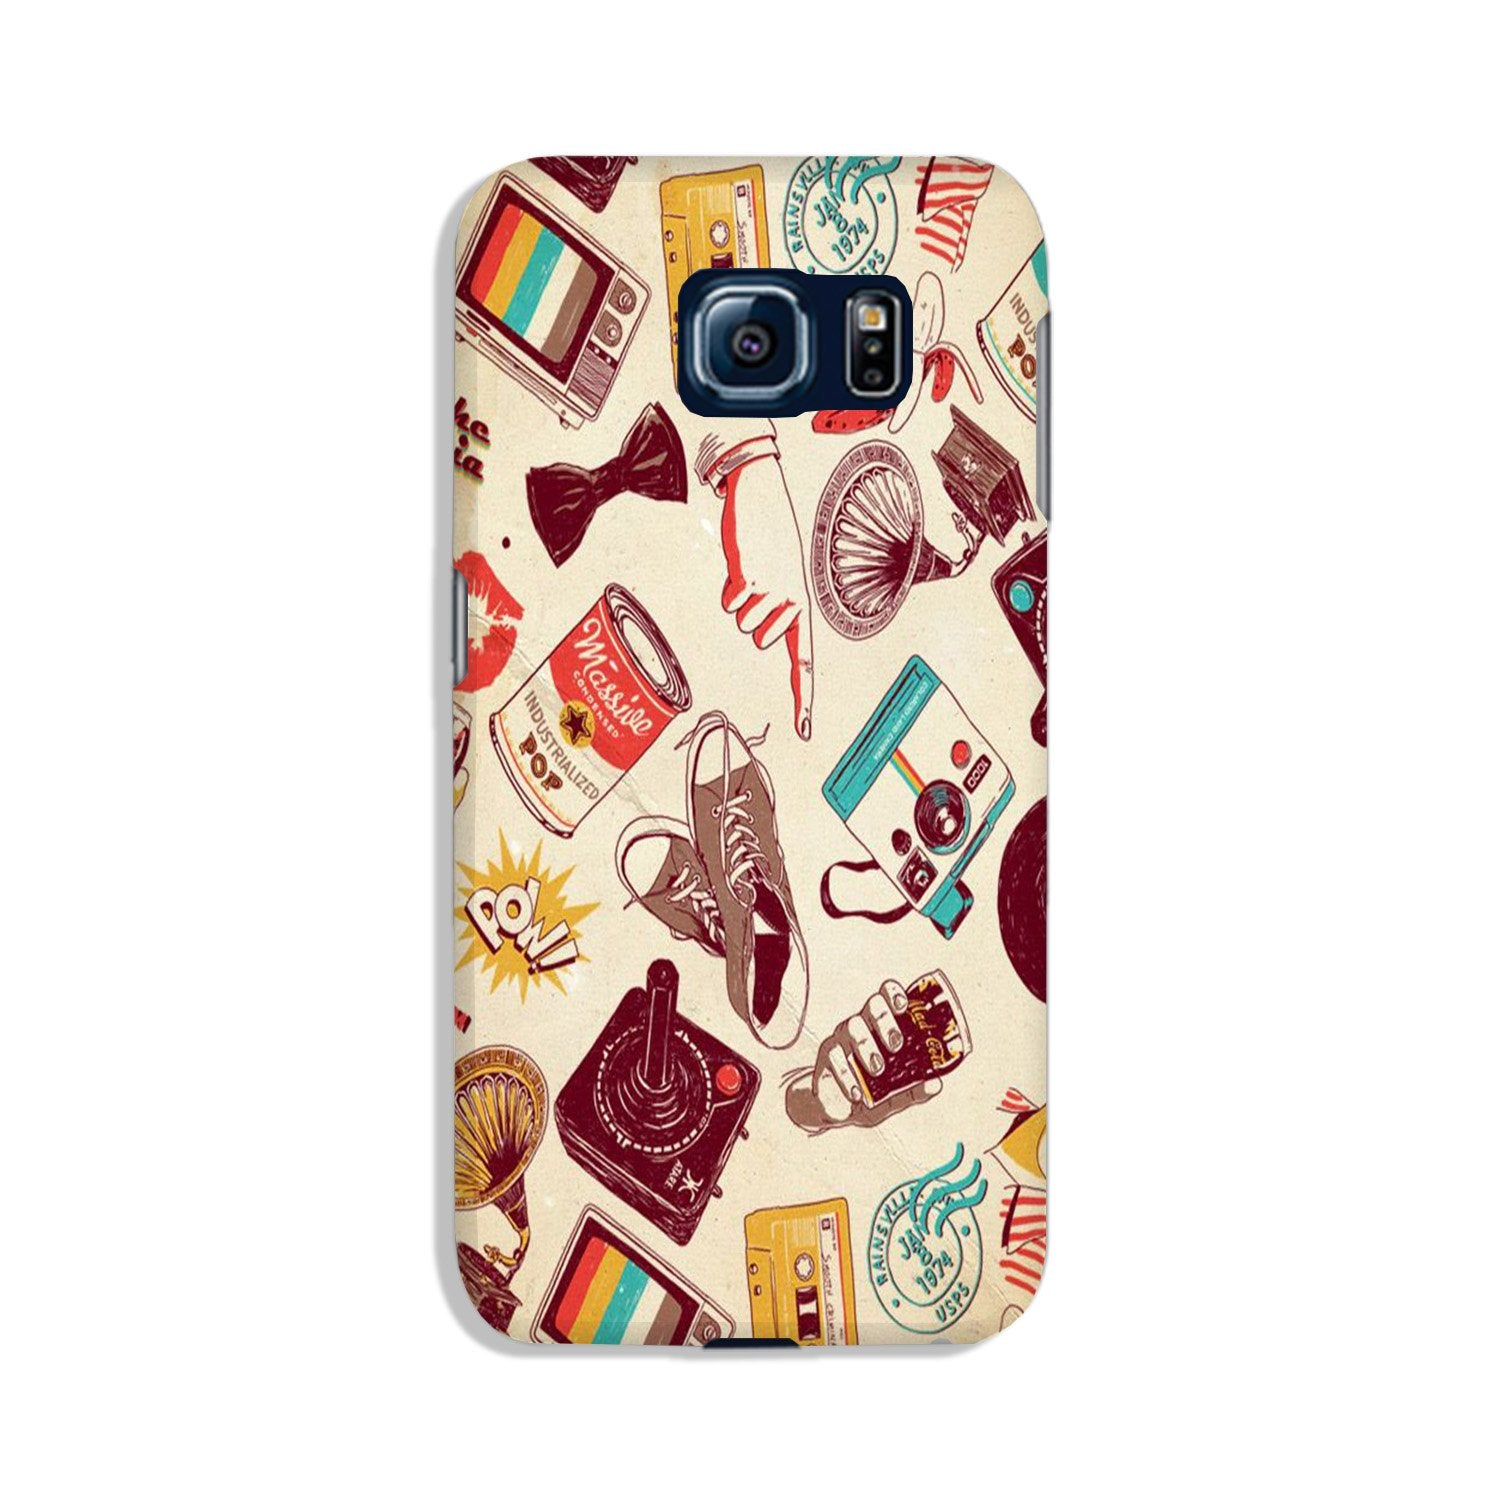 Vintage Case for Galaxy S6